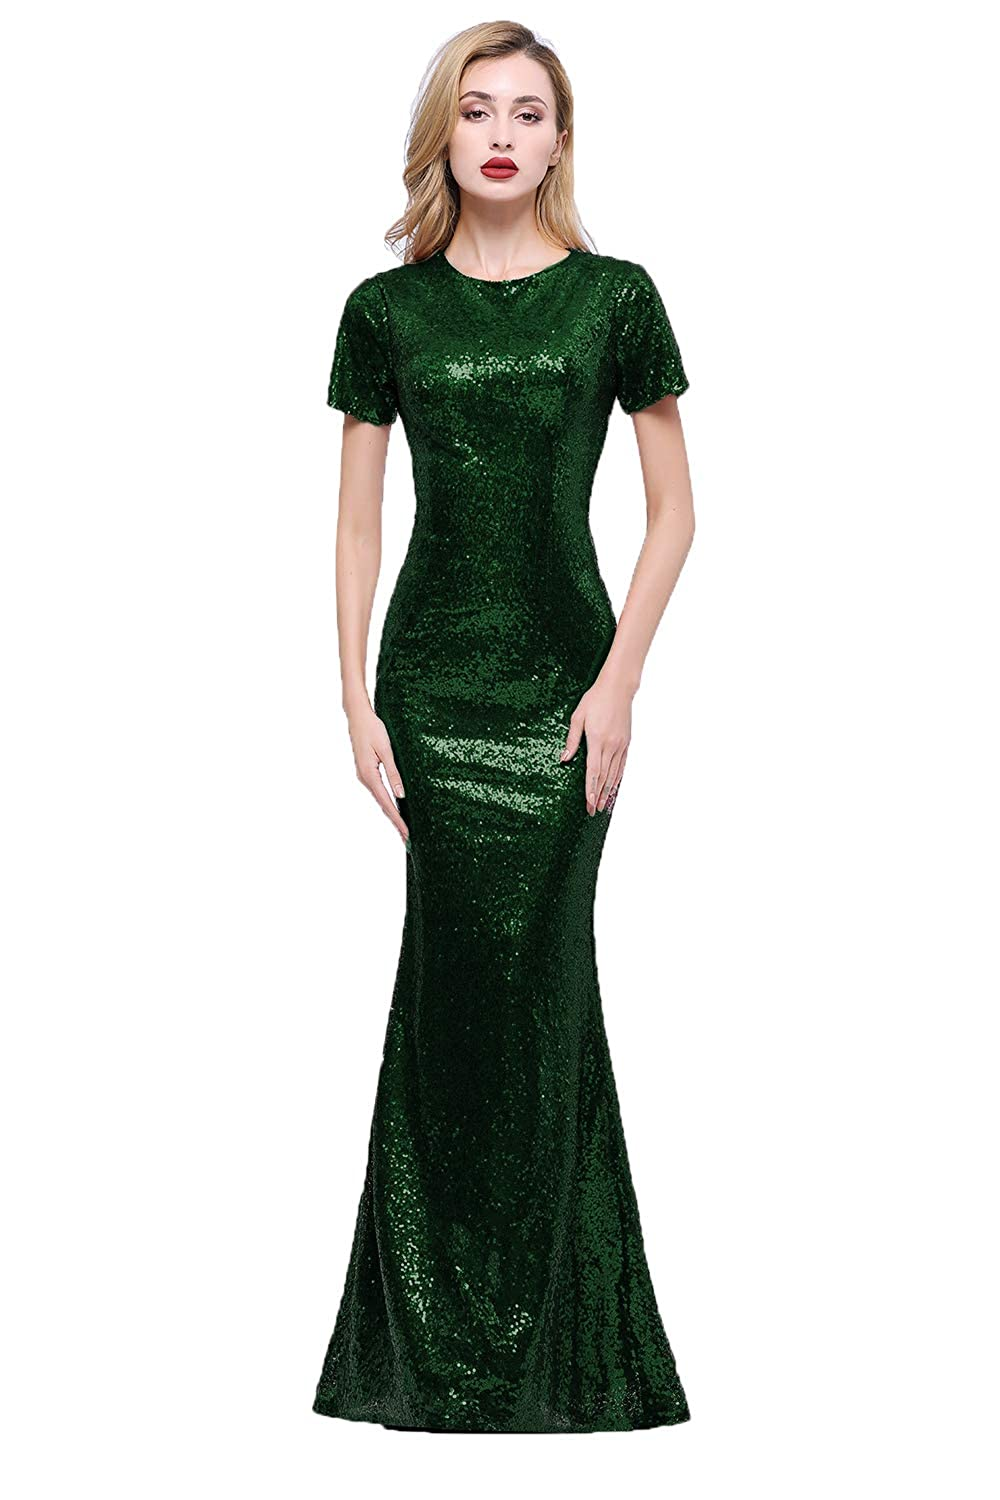 Hunter Green Honey Qiao Short Sleeves Bridesmaid Dresses Long High Back Evening Party Gowns